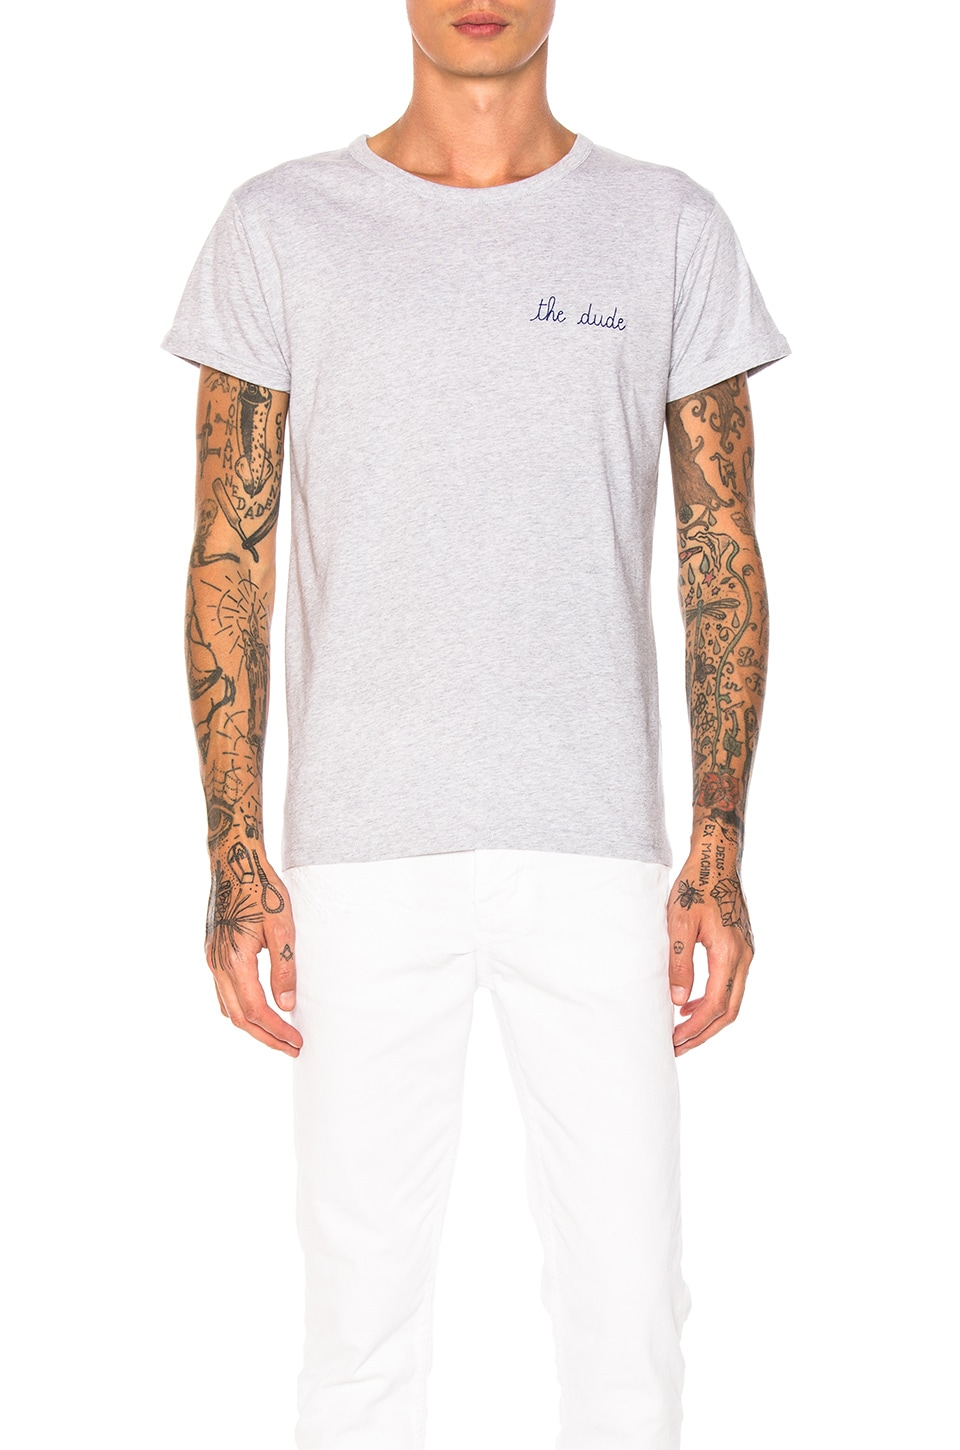 The Dude Tee by Maison Labiche